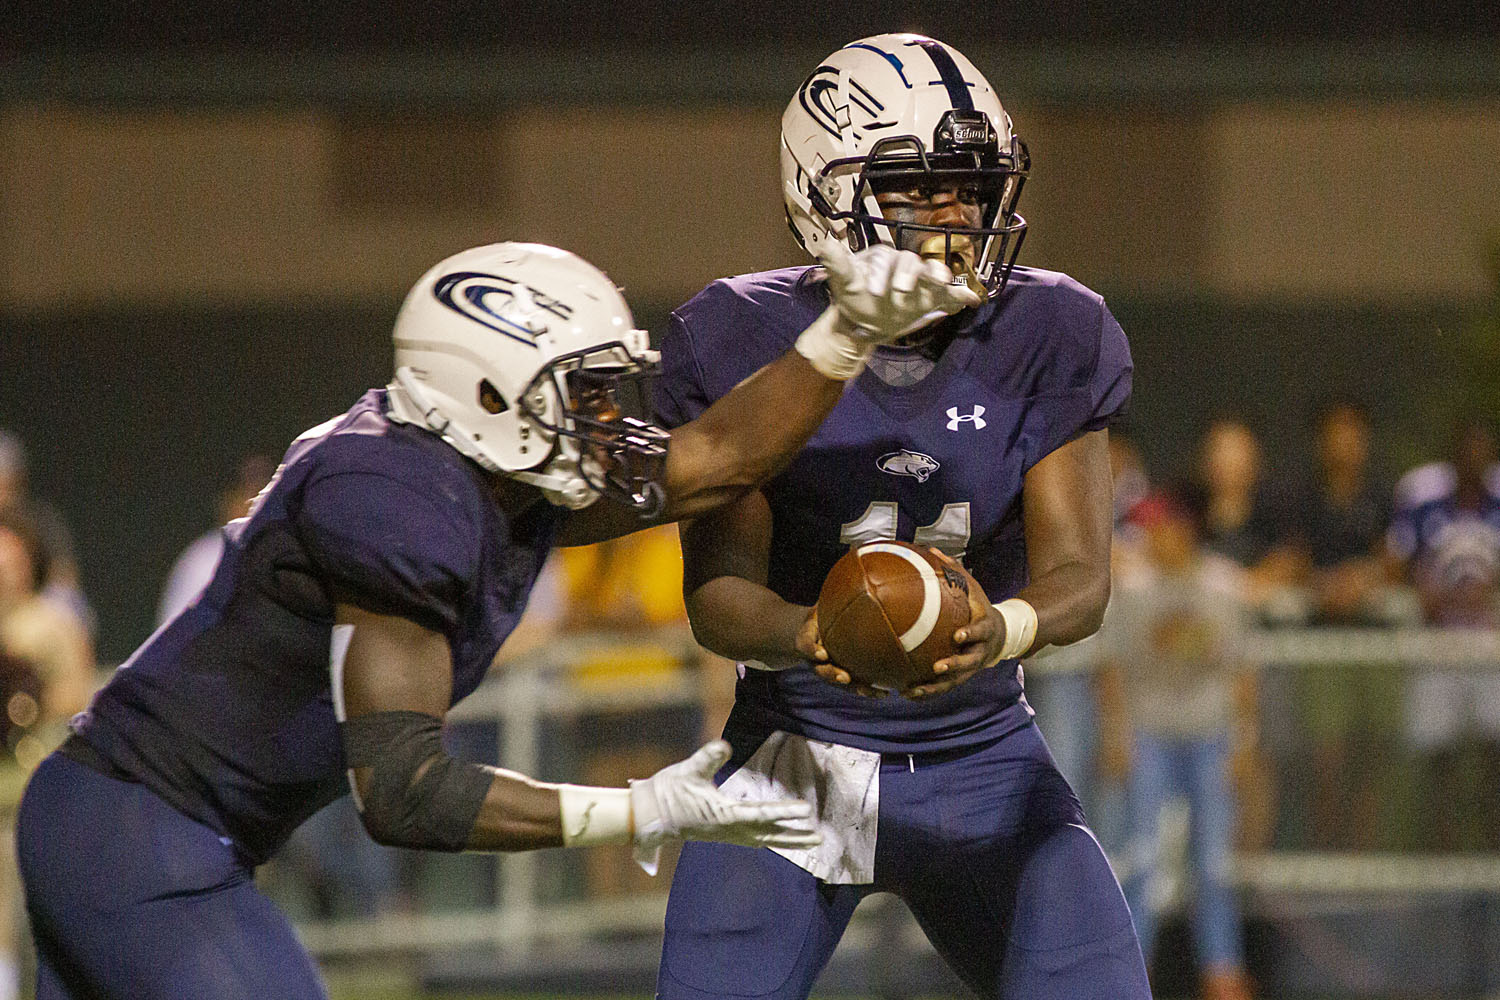 Clay-Chalkville looks to bounce back with Gardendale coming into town